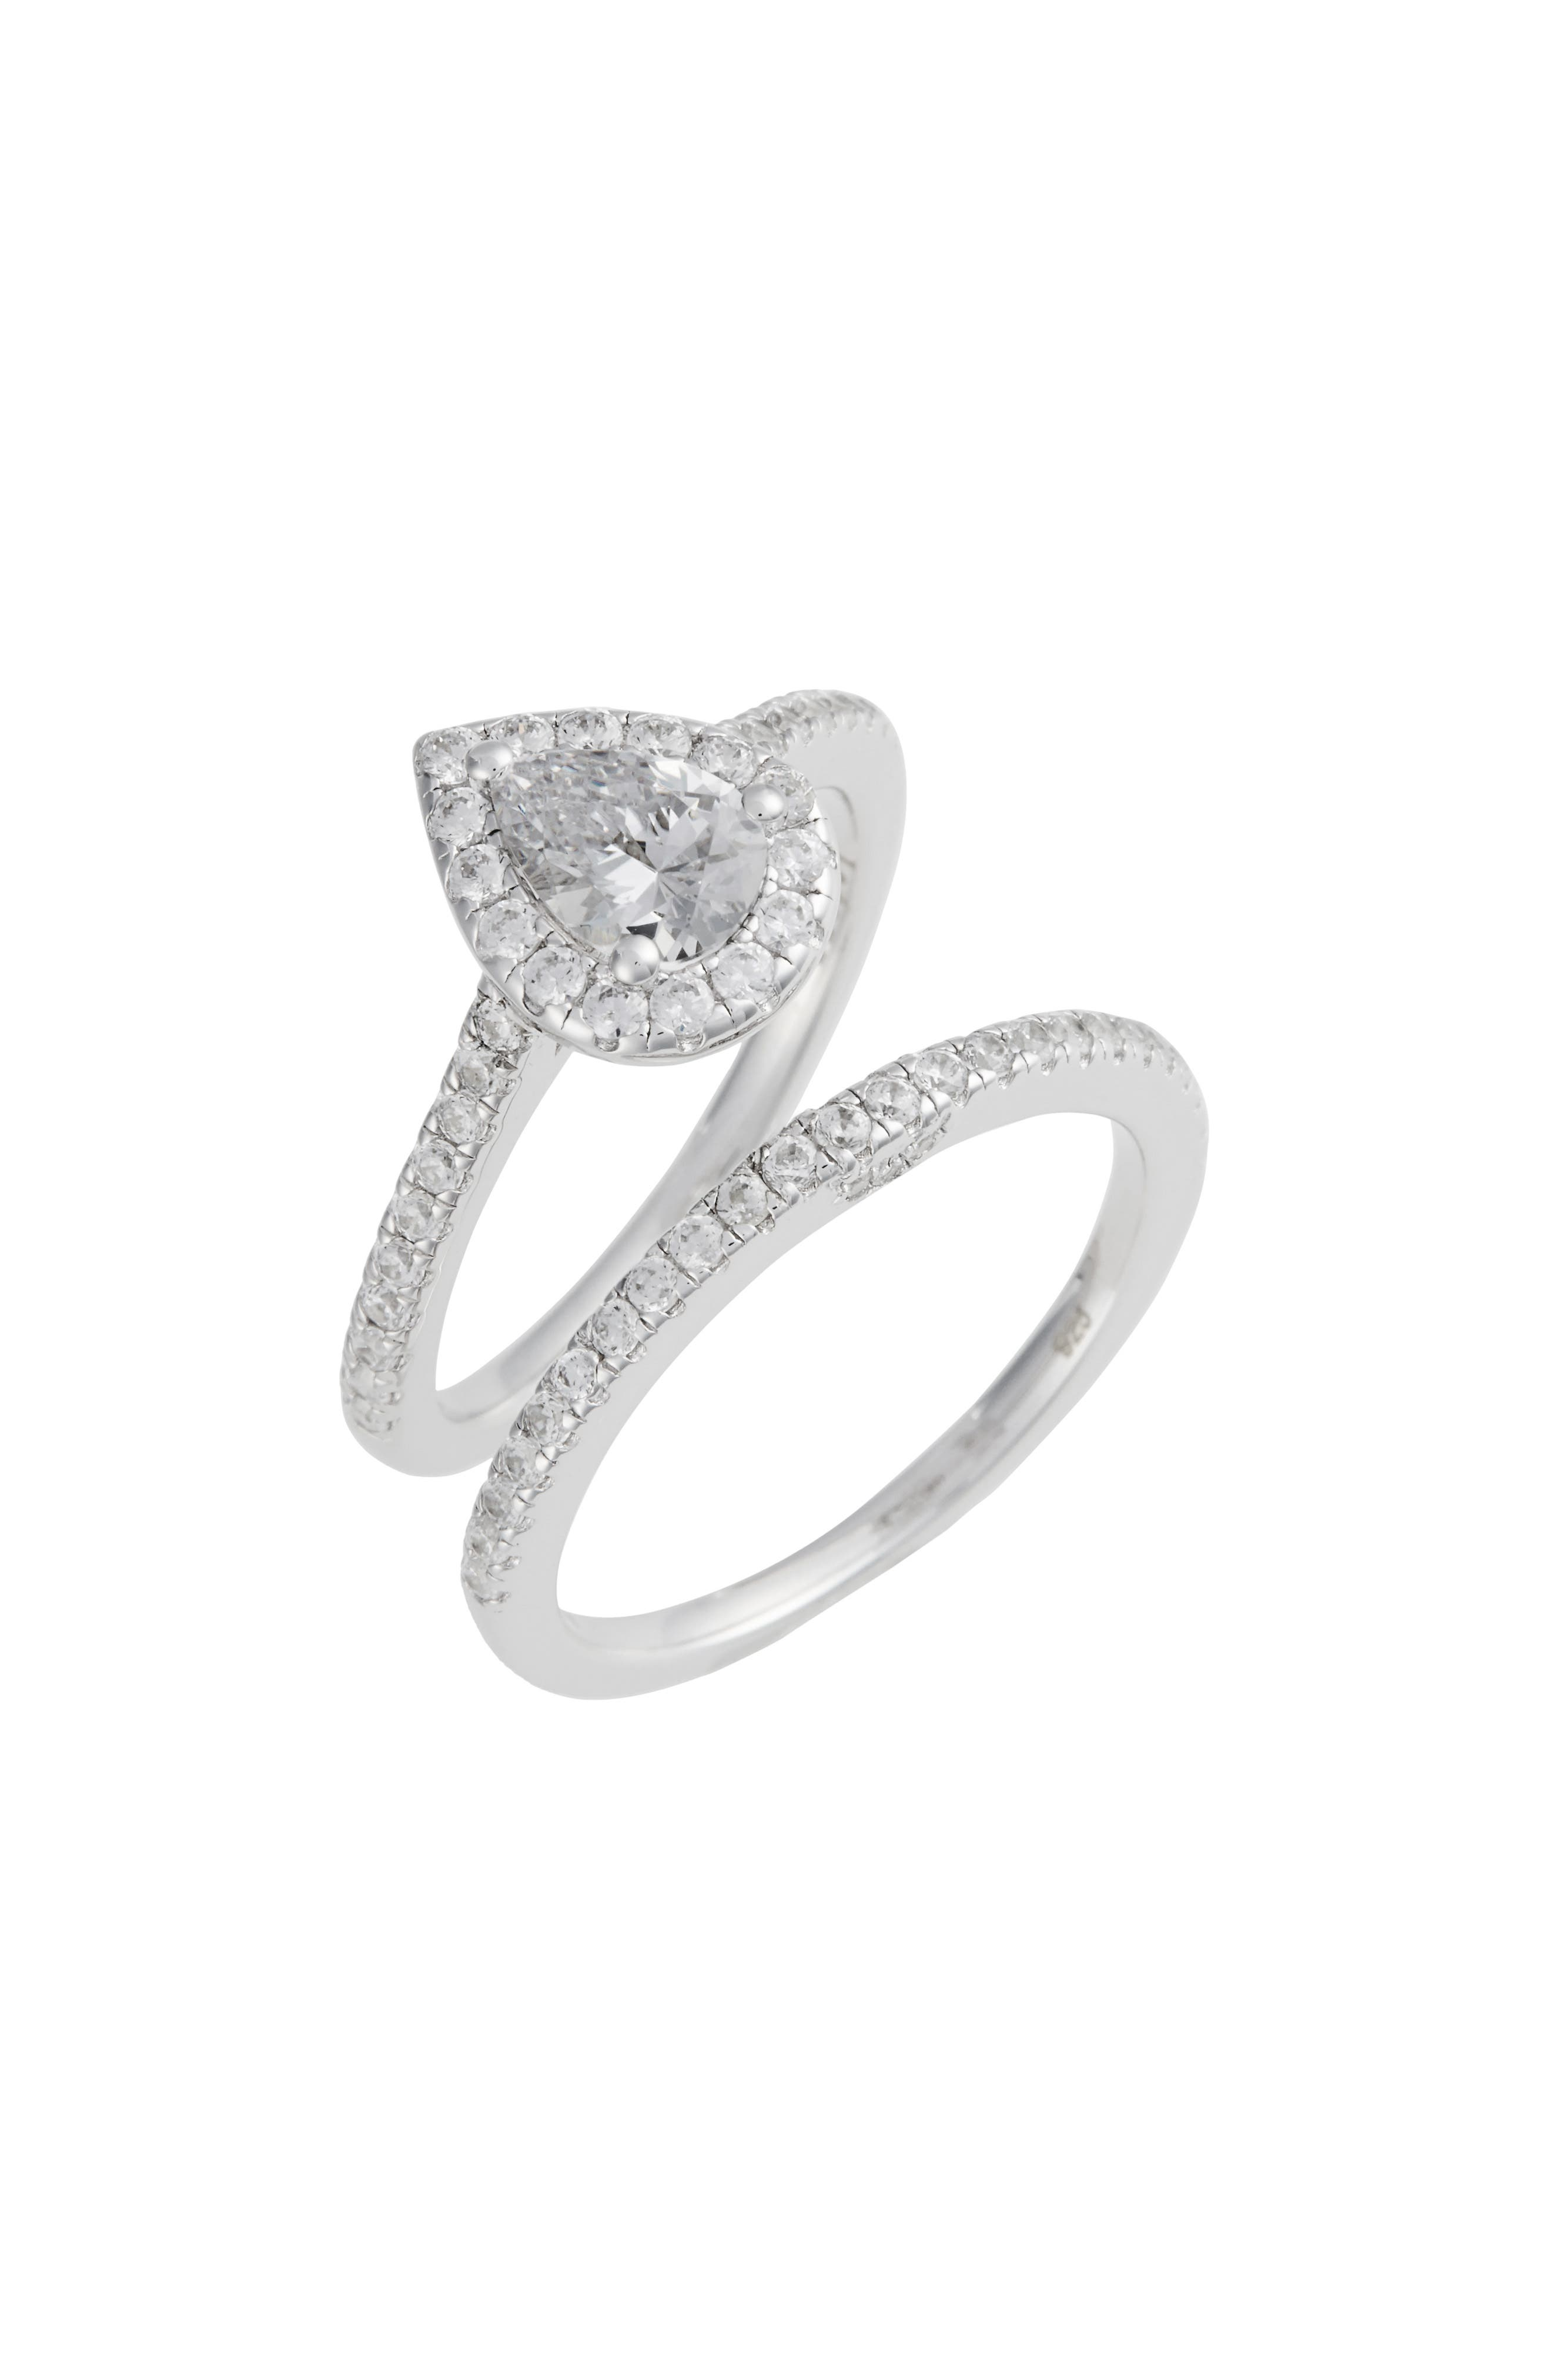 Joined at the Heart Pear-Shaped Halo Ring,                             Main thumbnail 1, color,                             Silver/ Clear